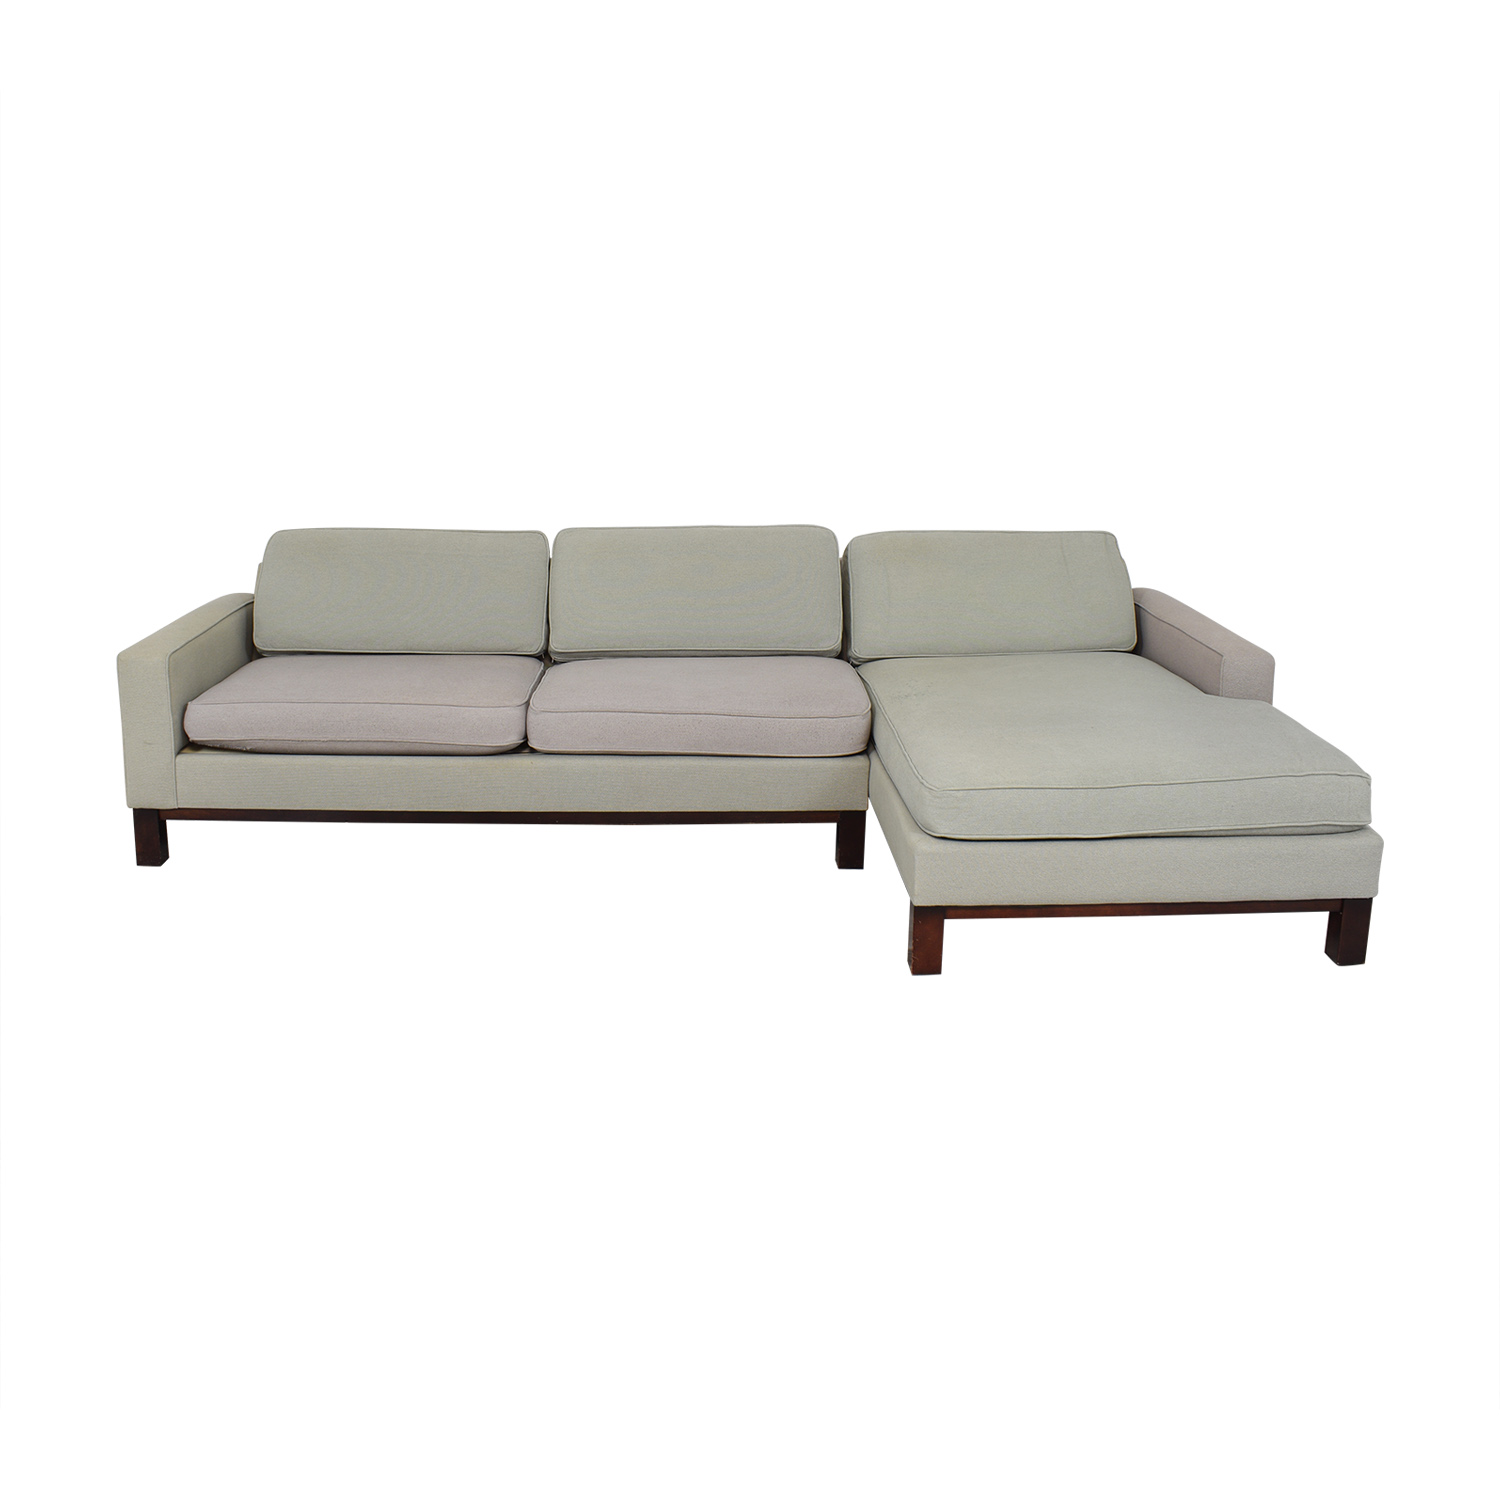 Room & Board Room & Board Chaise Sectional Sofa coupon